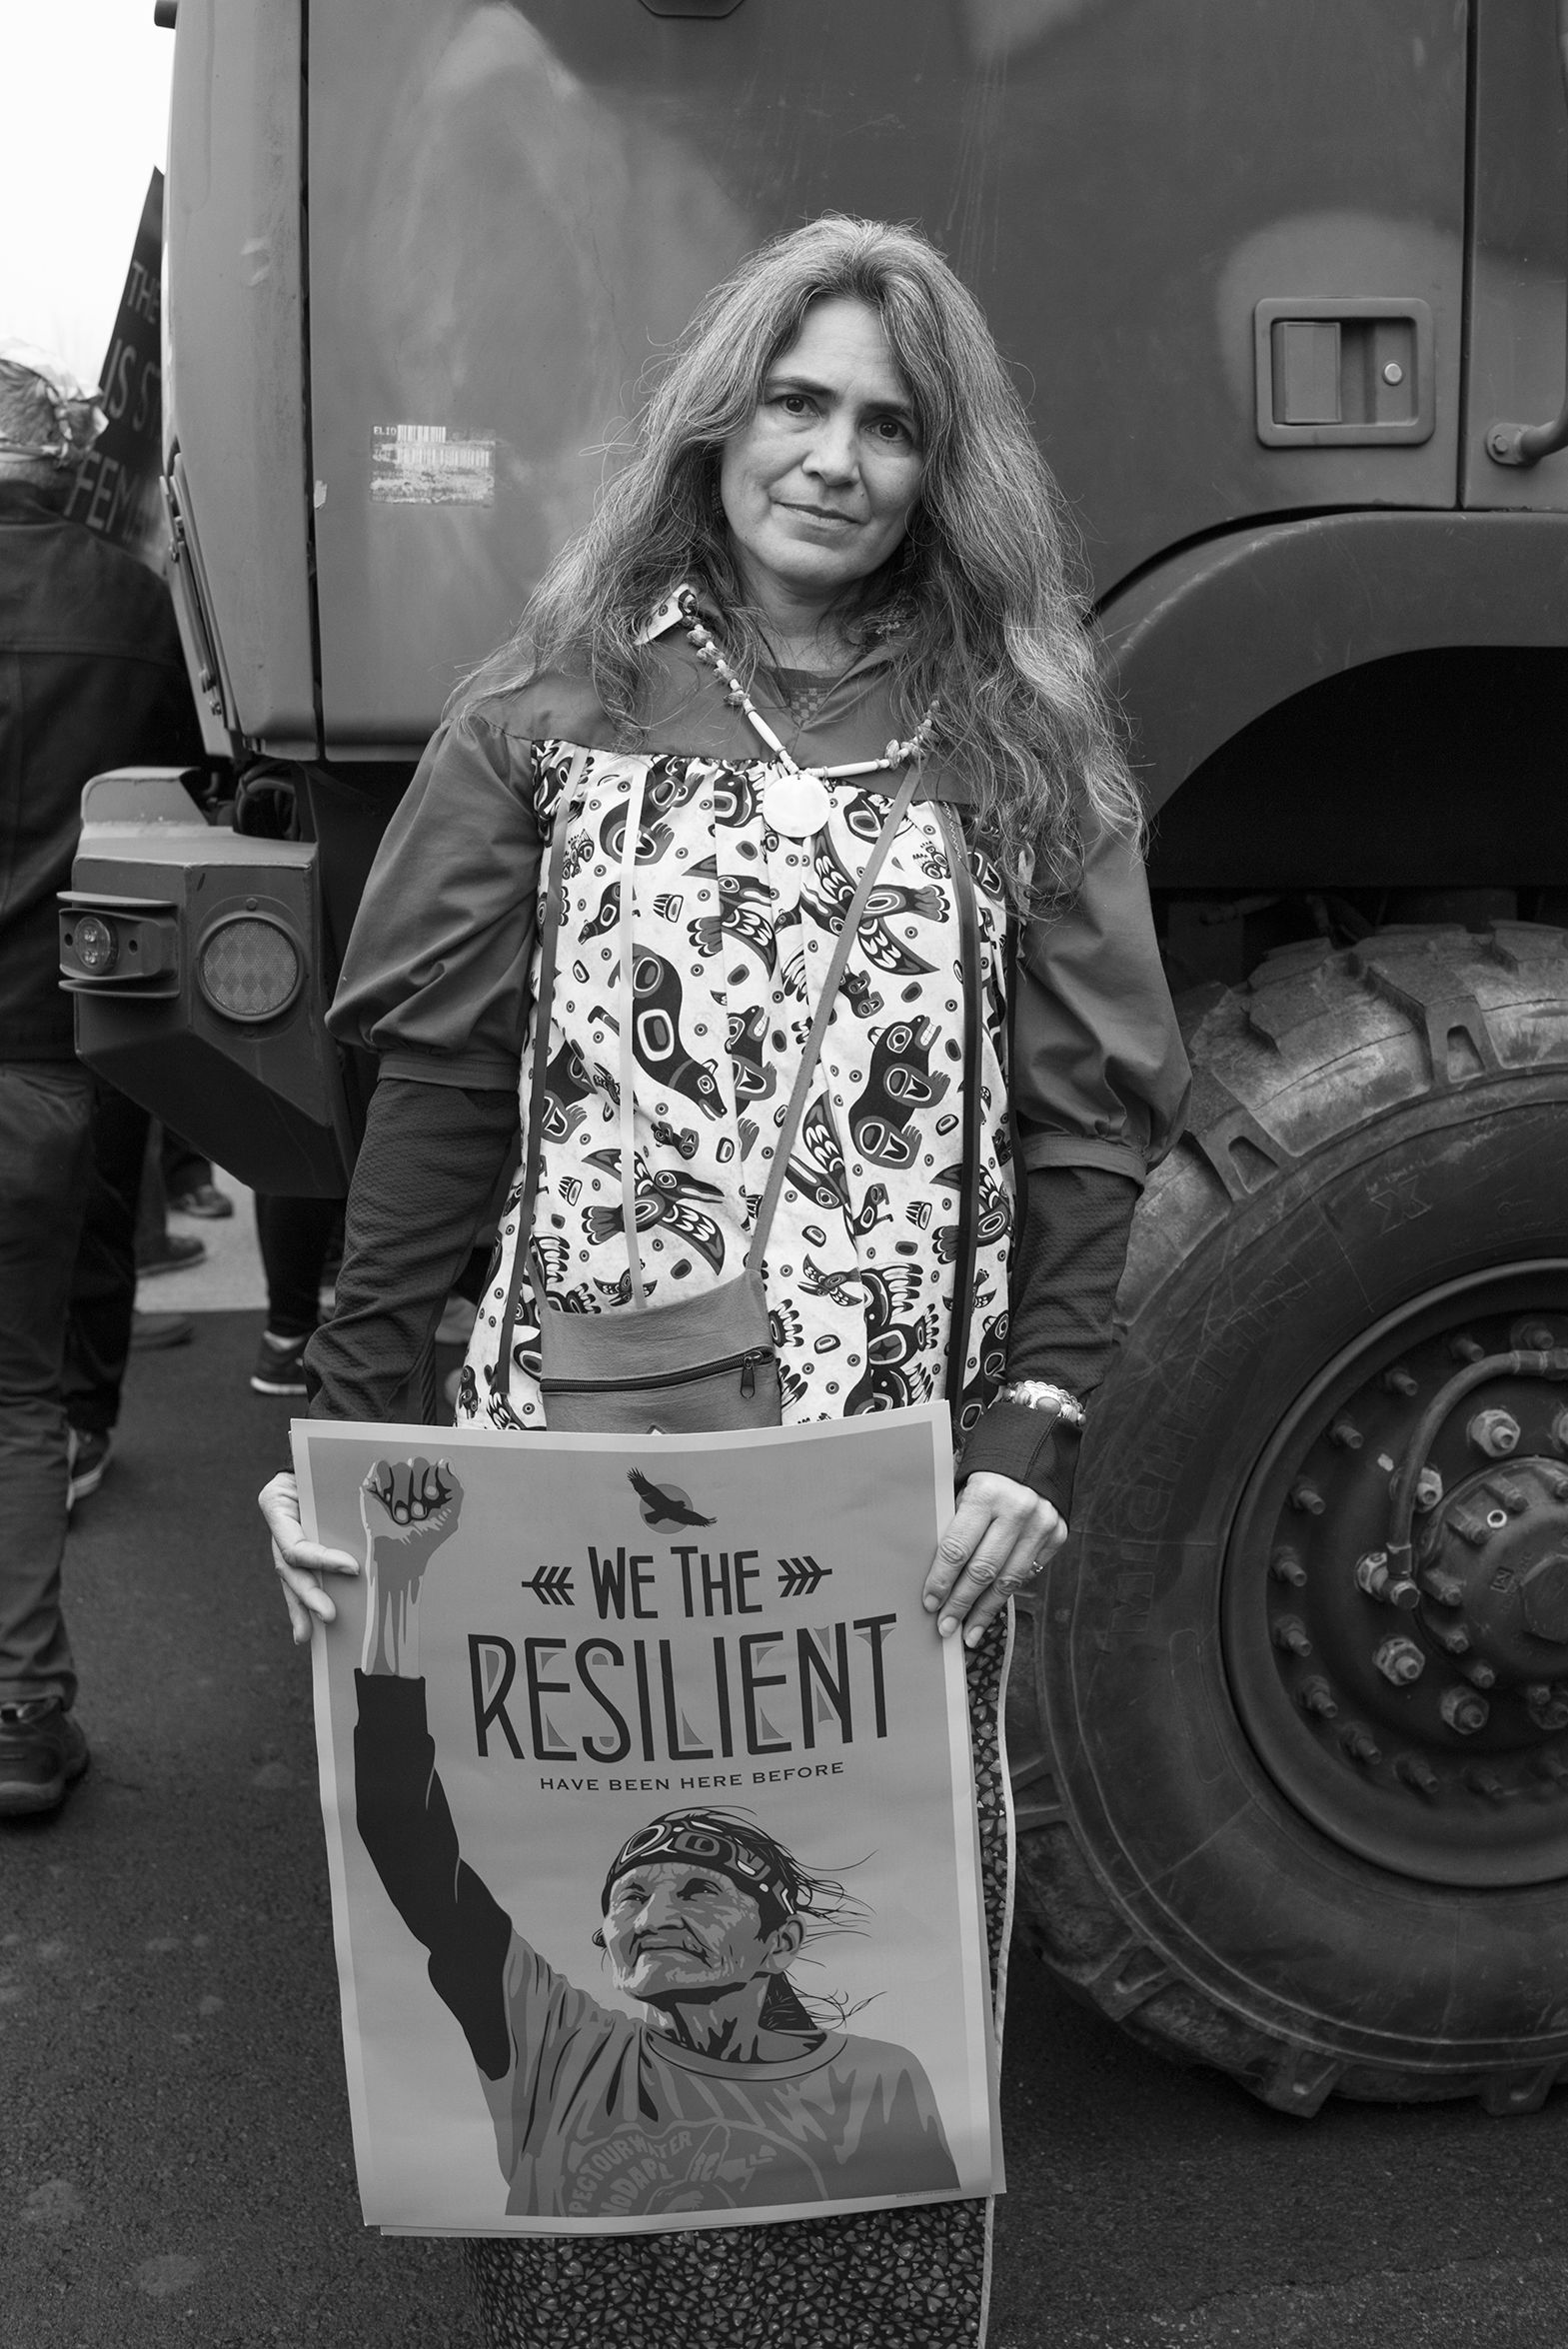 <b>Janice Posnikoff, Washington DC area</b>                                                                      I'm here representing the territory of my mother,  Lillian Posnikoff from Alert Bay Canada and her ancestors, the Kwakwa̱ka̱'wakw people. Can't you feel what we're getting out of this march?  It's unity, it's solidarity, it's everything that we all wanted. It's sending the clear message that absolutely, absolutely he's not the popular president and we're going to fight every inch of the way, every time it looks like corruption is happening or injustice is happening, and all of it.